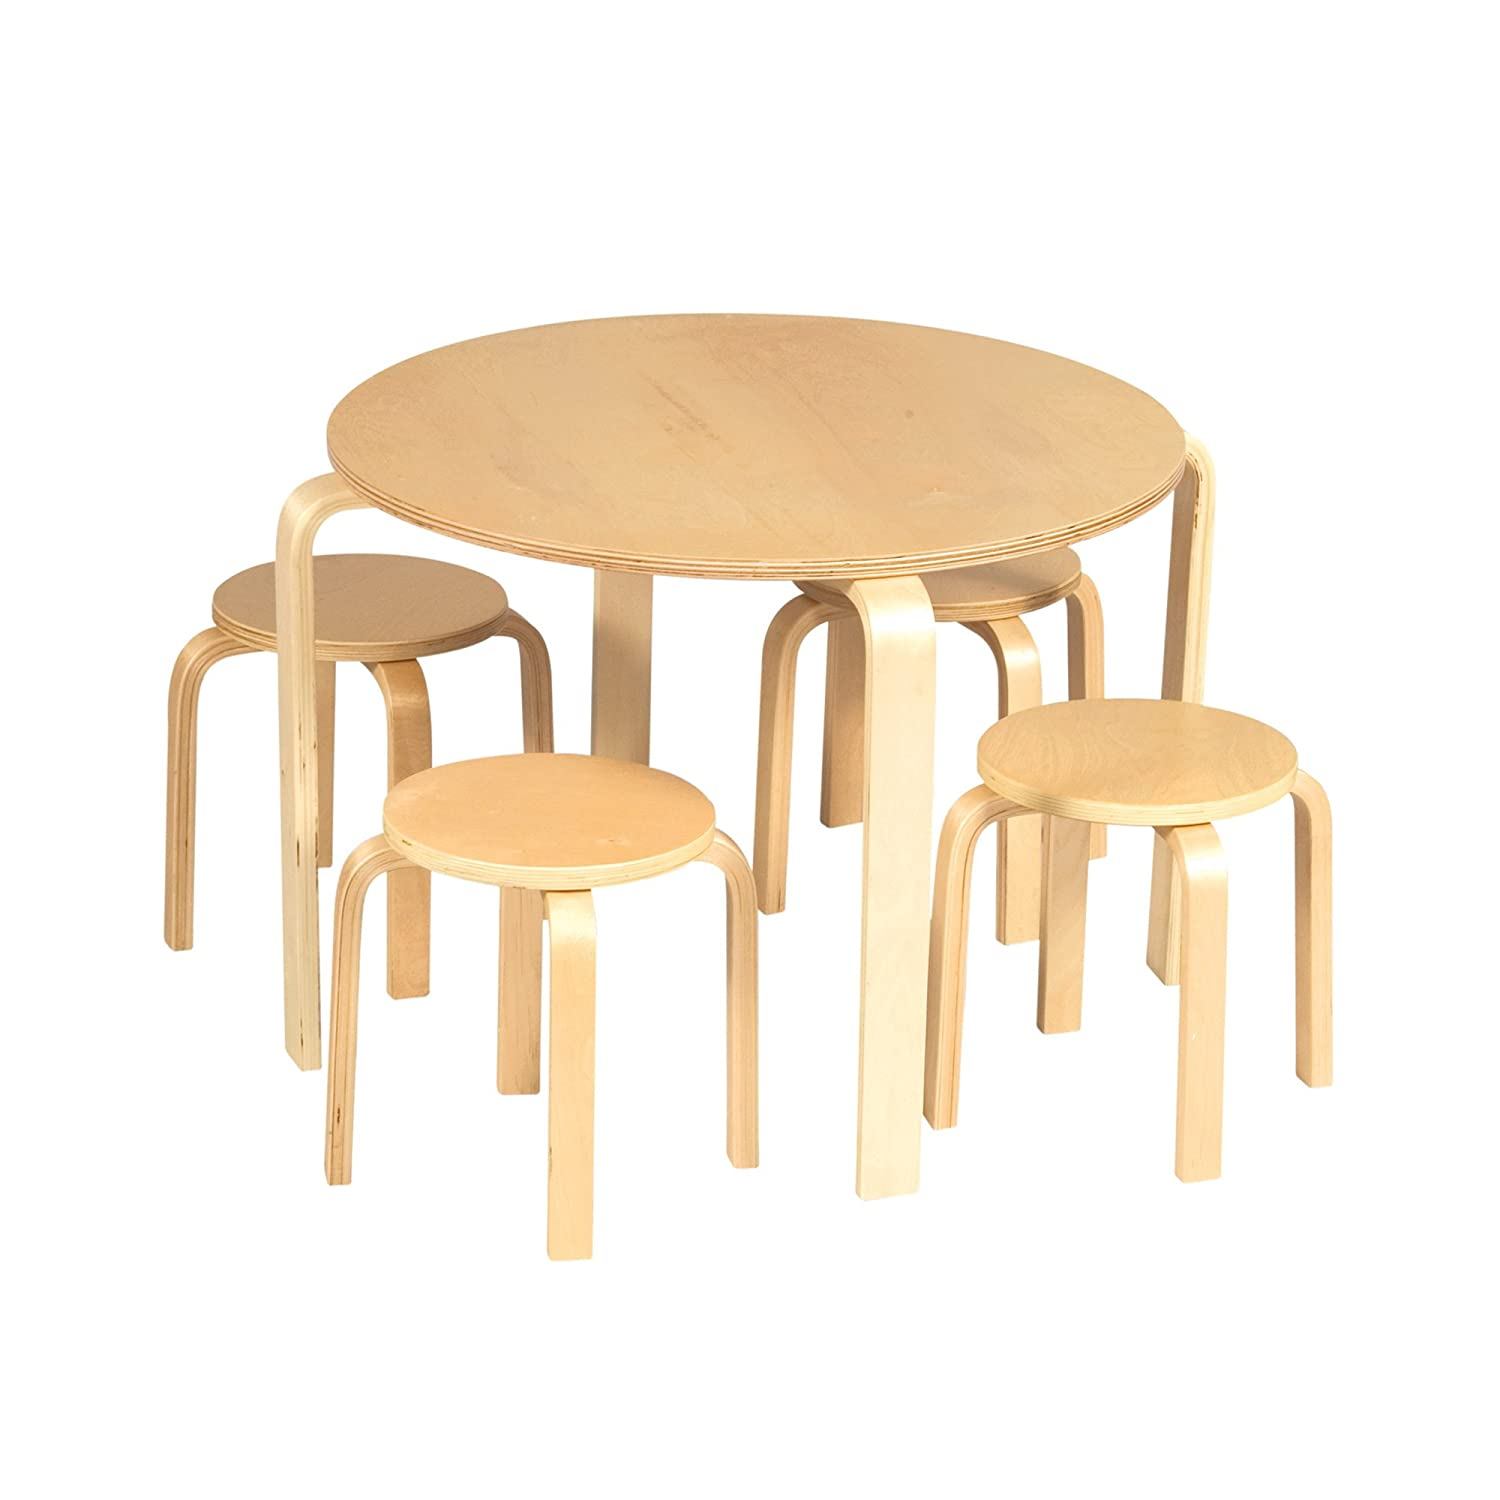 Amazon.com: Guidecraft Nordic Natural Table & 4 Chairs Set - Kids ...